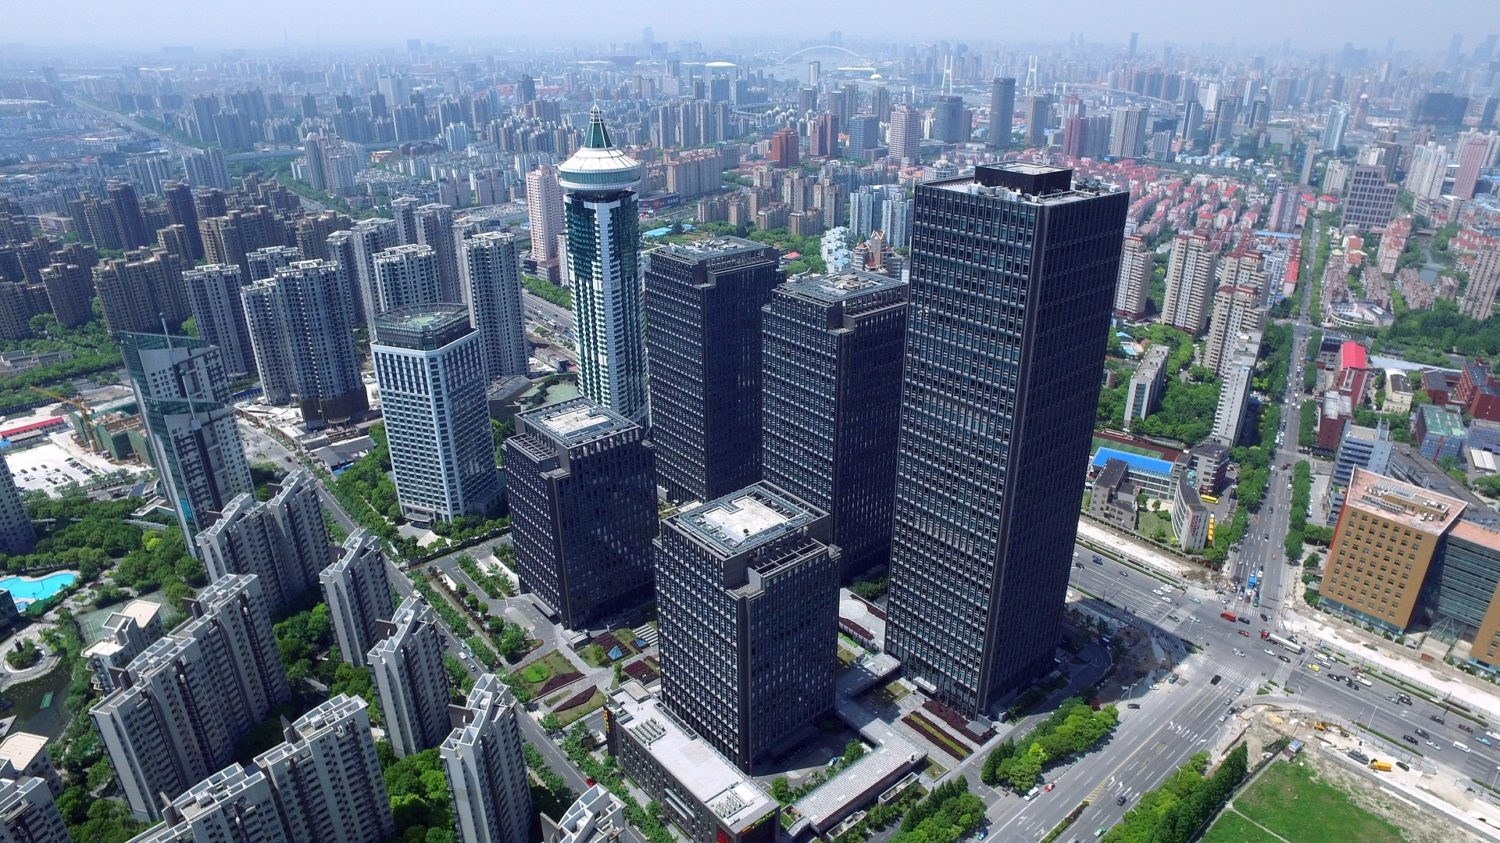 Aerial view of Shanghai in China